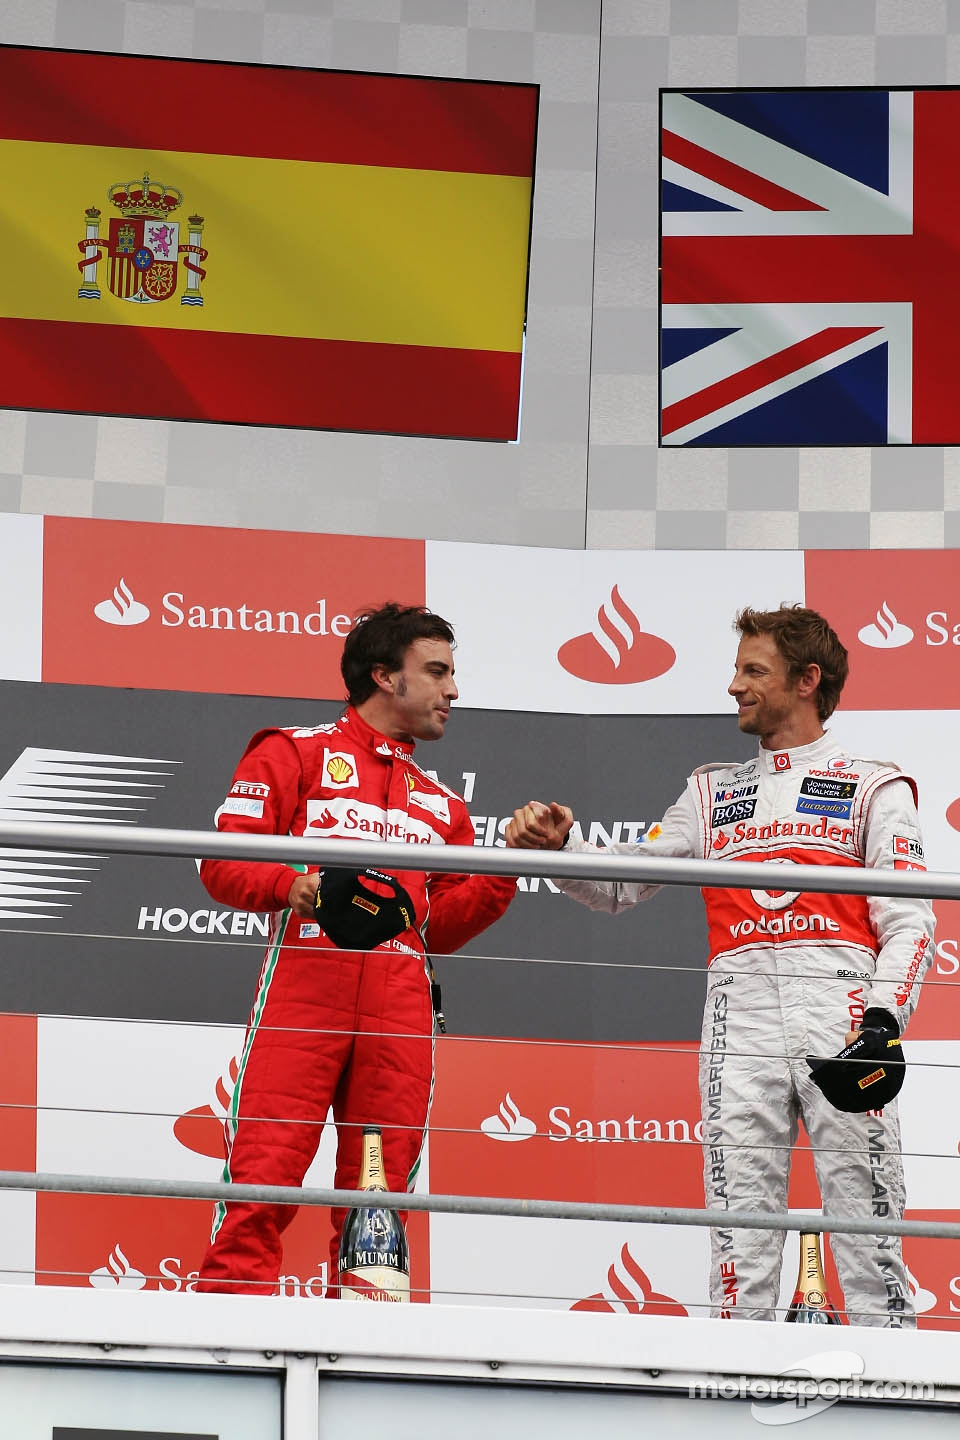 Podium: Fernando Alonso, Scuderia Ferrari celebrates with third placed Jenson Button, McLaren